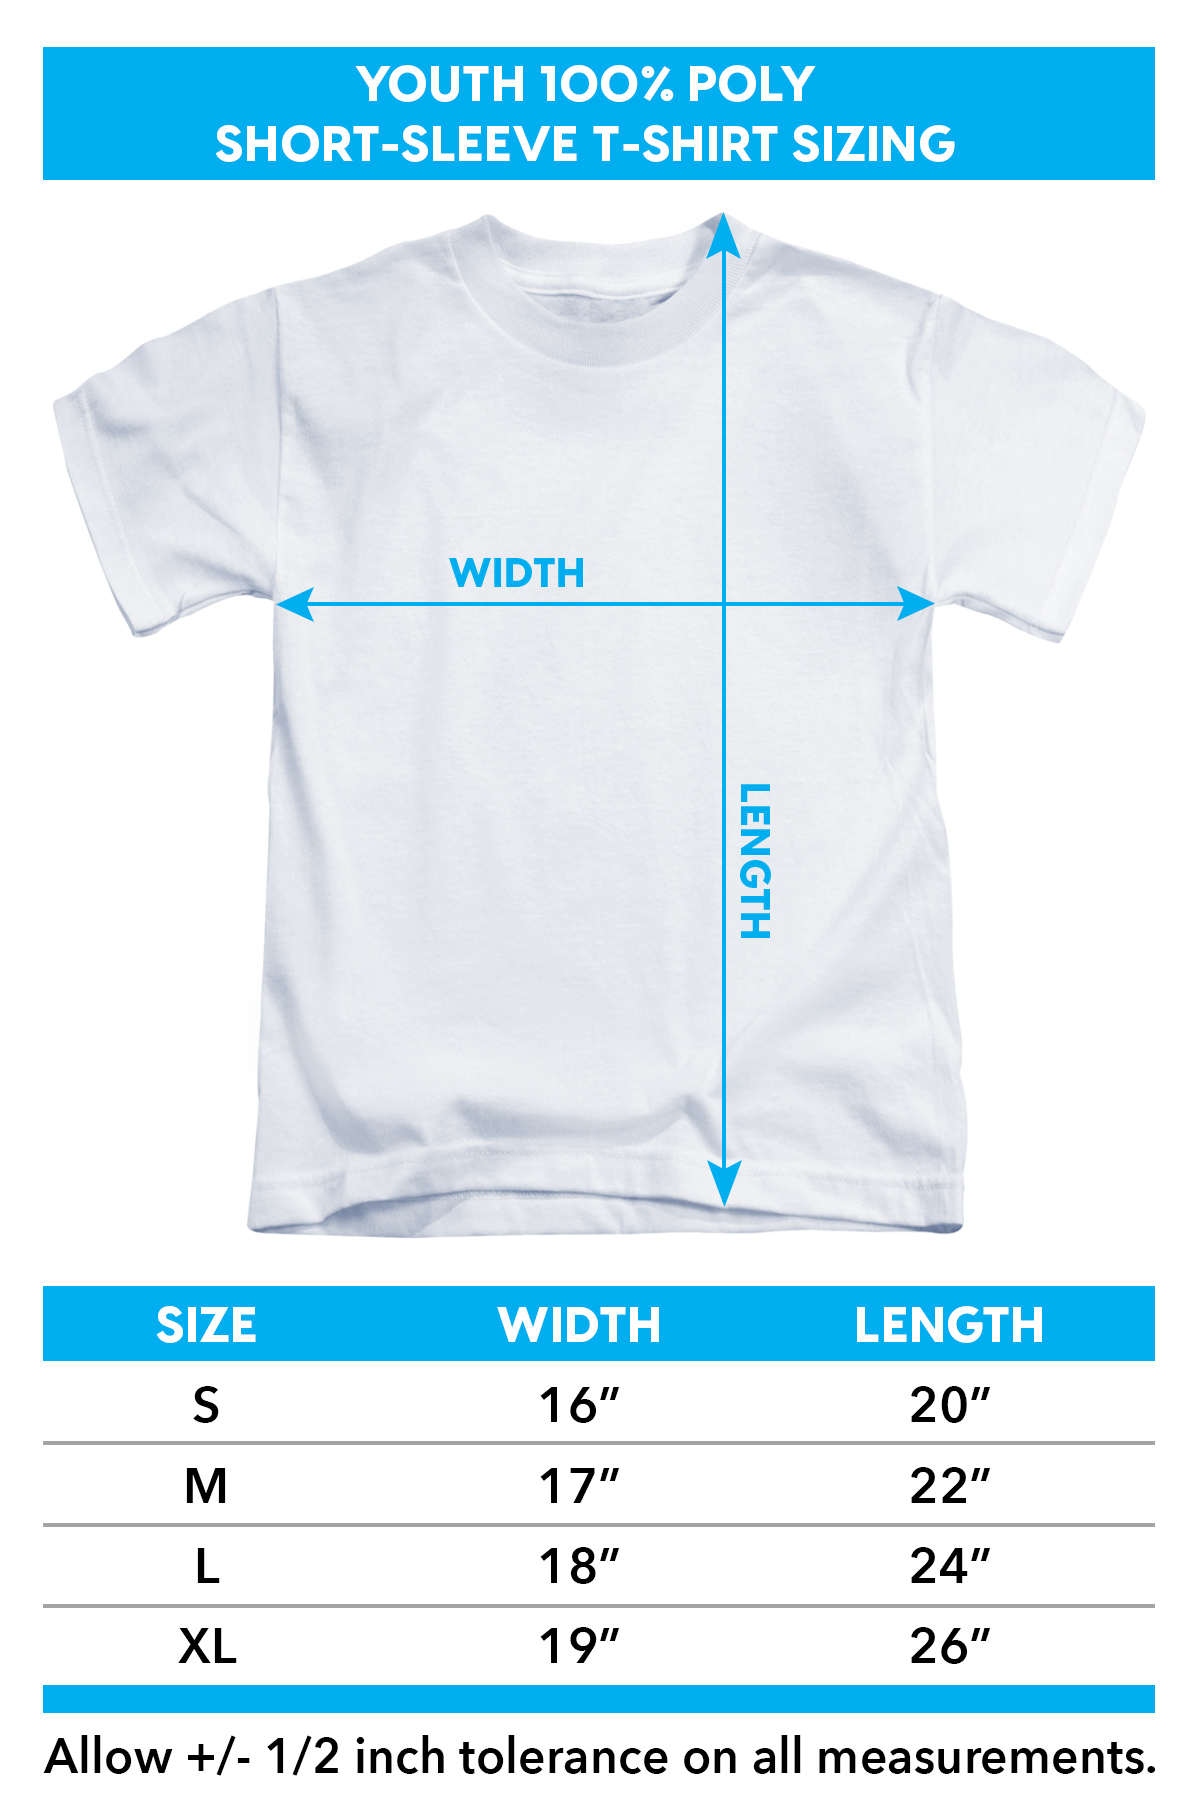 Sizing Chart for Anne Stokes T-Shirt - Sublimated Immortal Flight